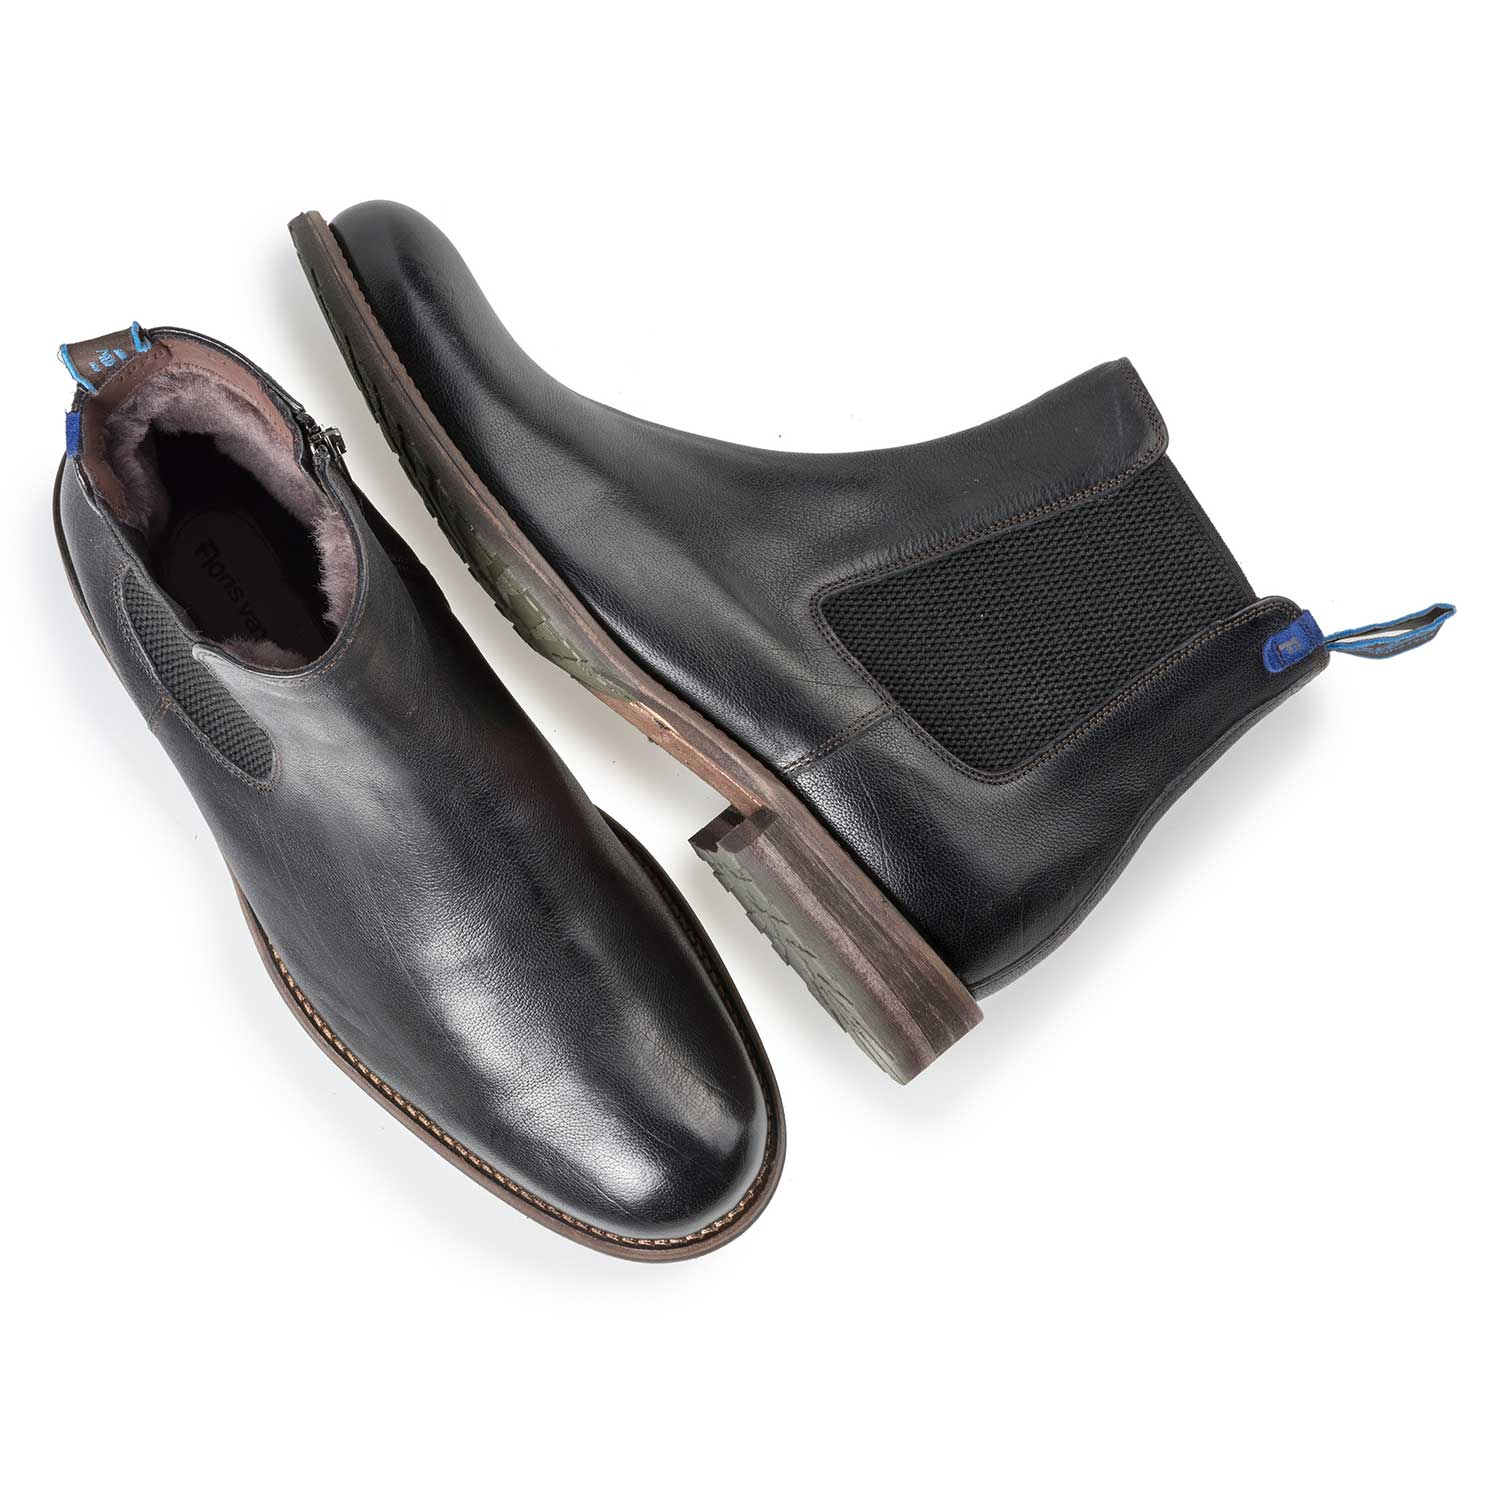 10289/01 - Black wool lined leather Chelsea boot